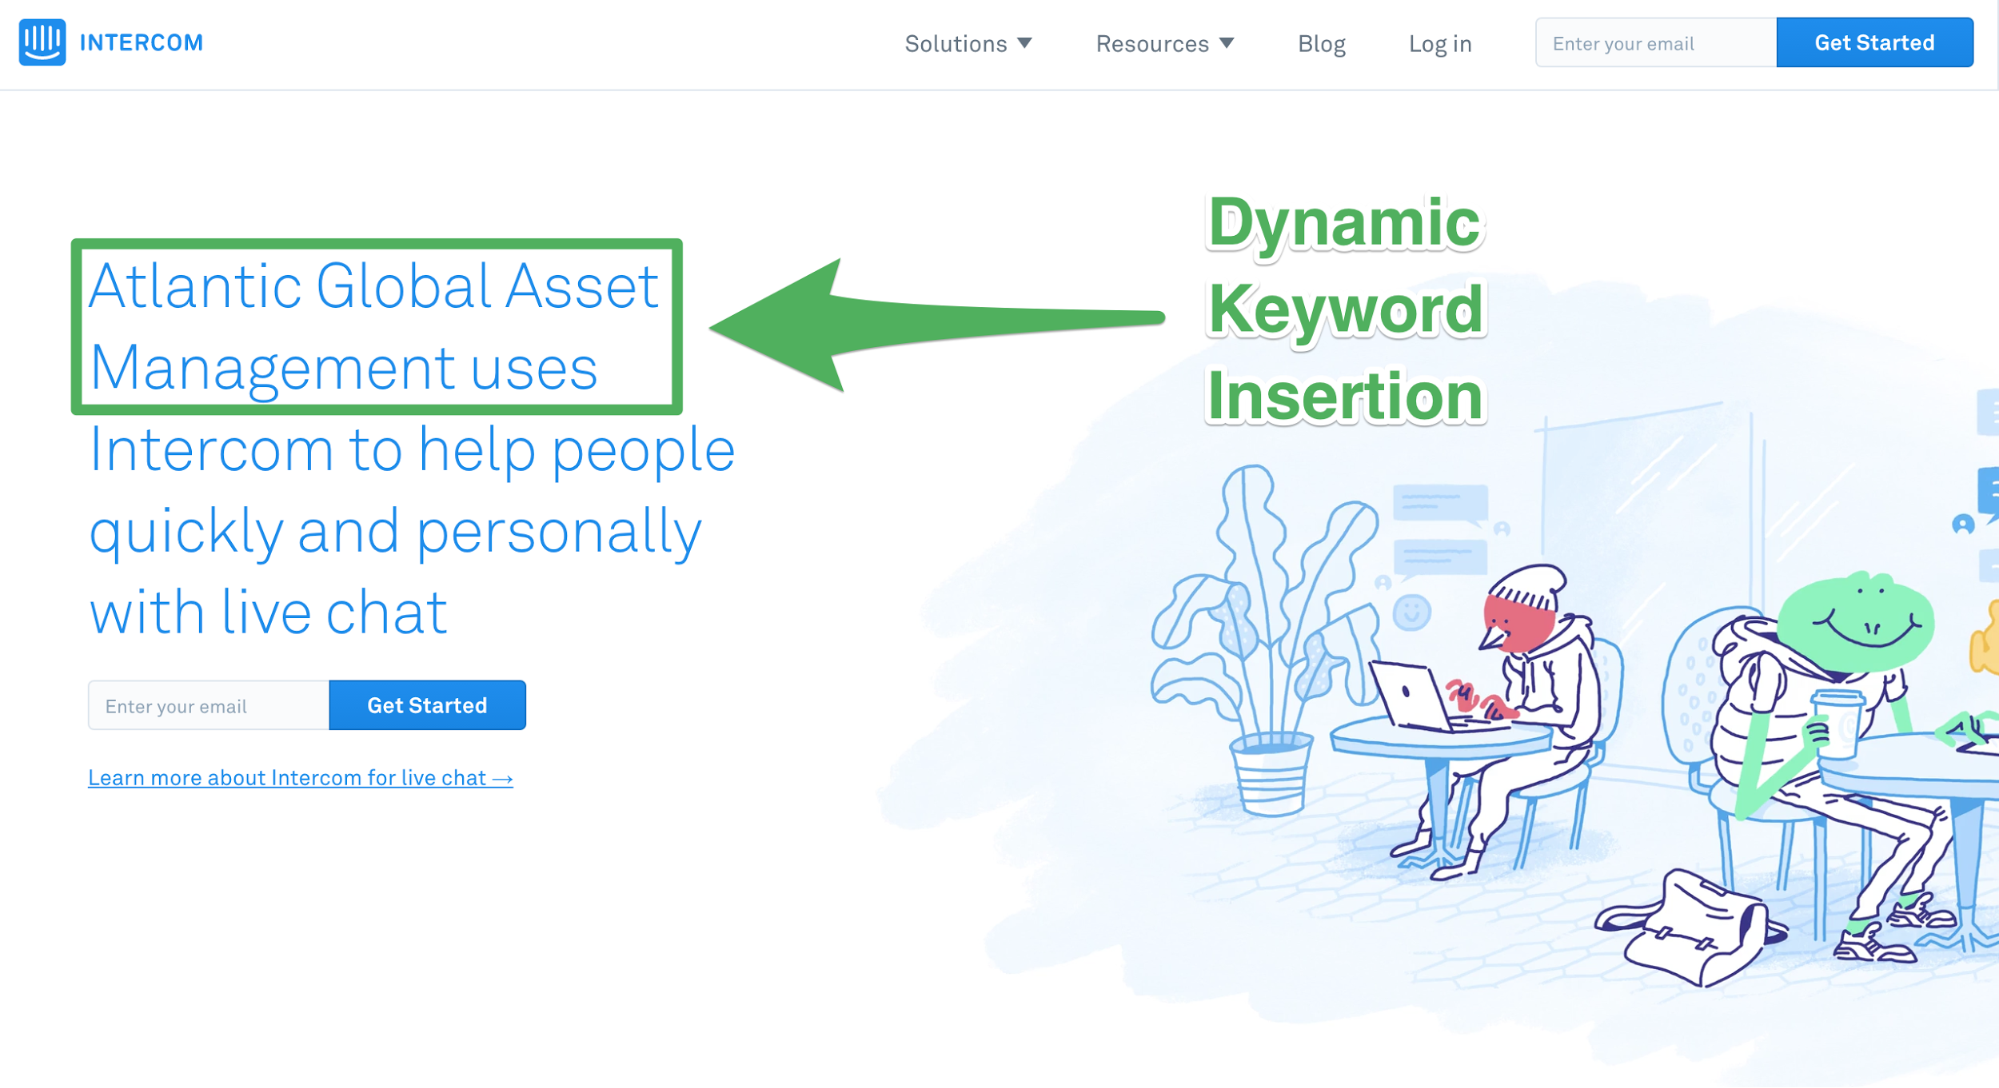 Screenshot showing a dynamic keyword landing page on intercom